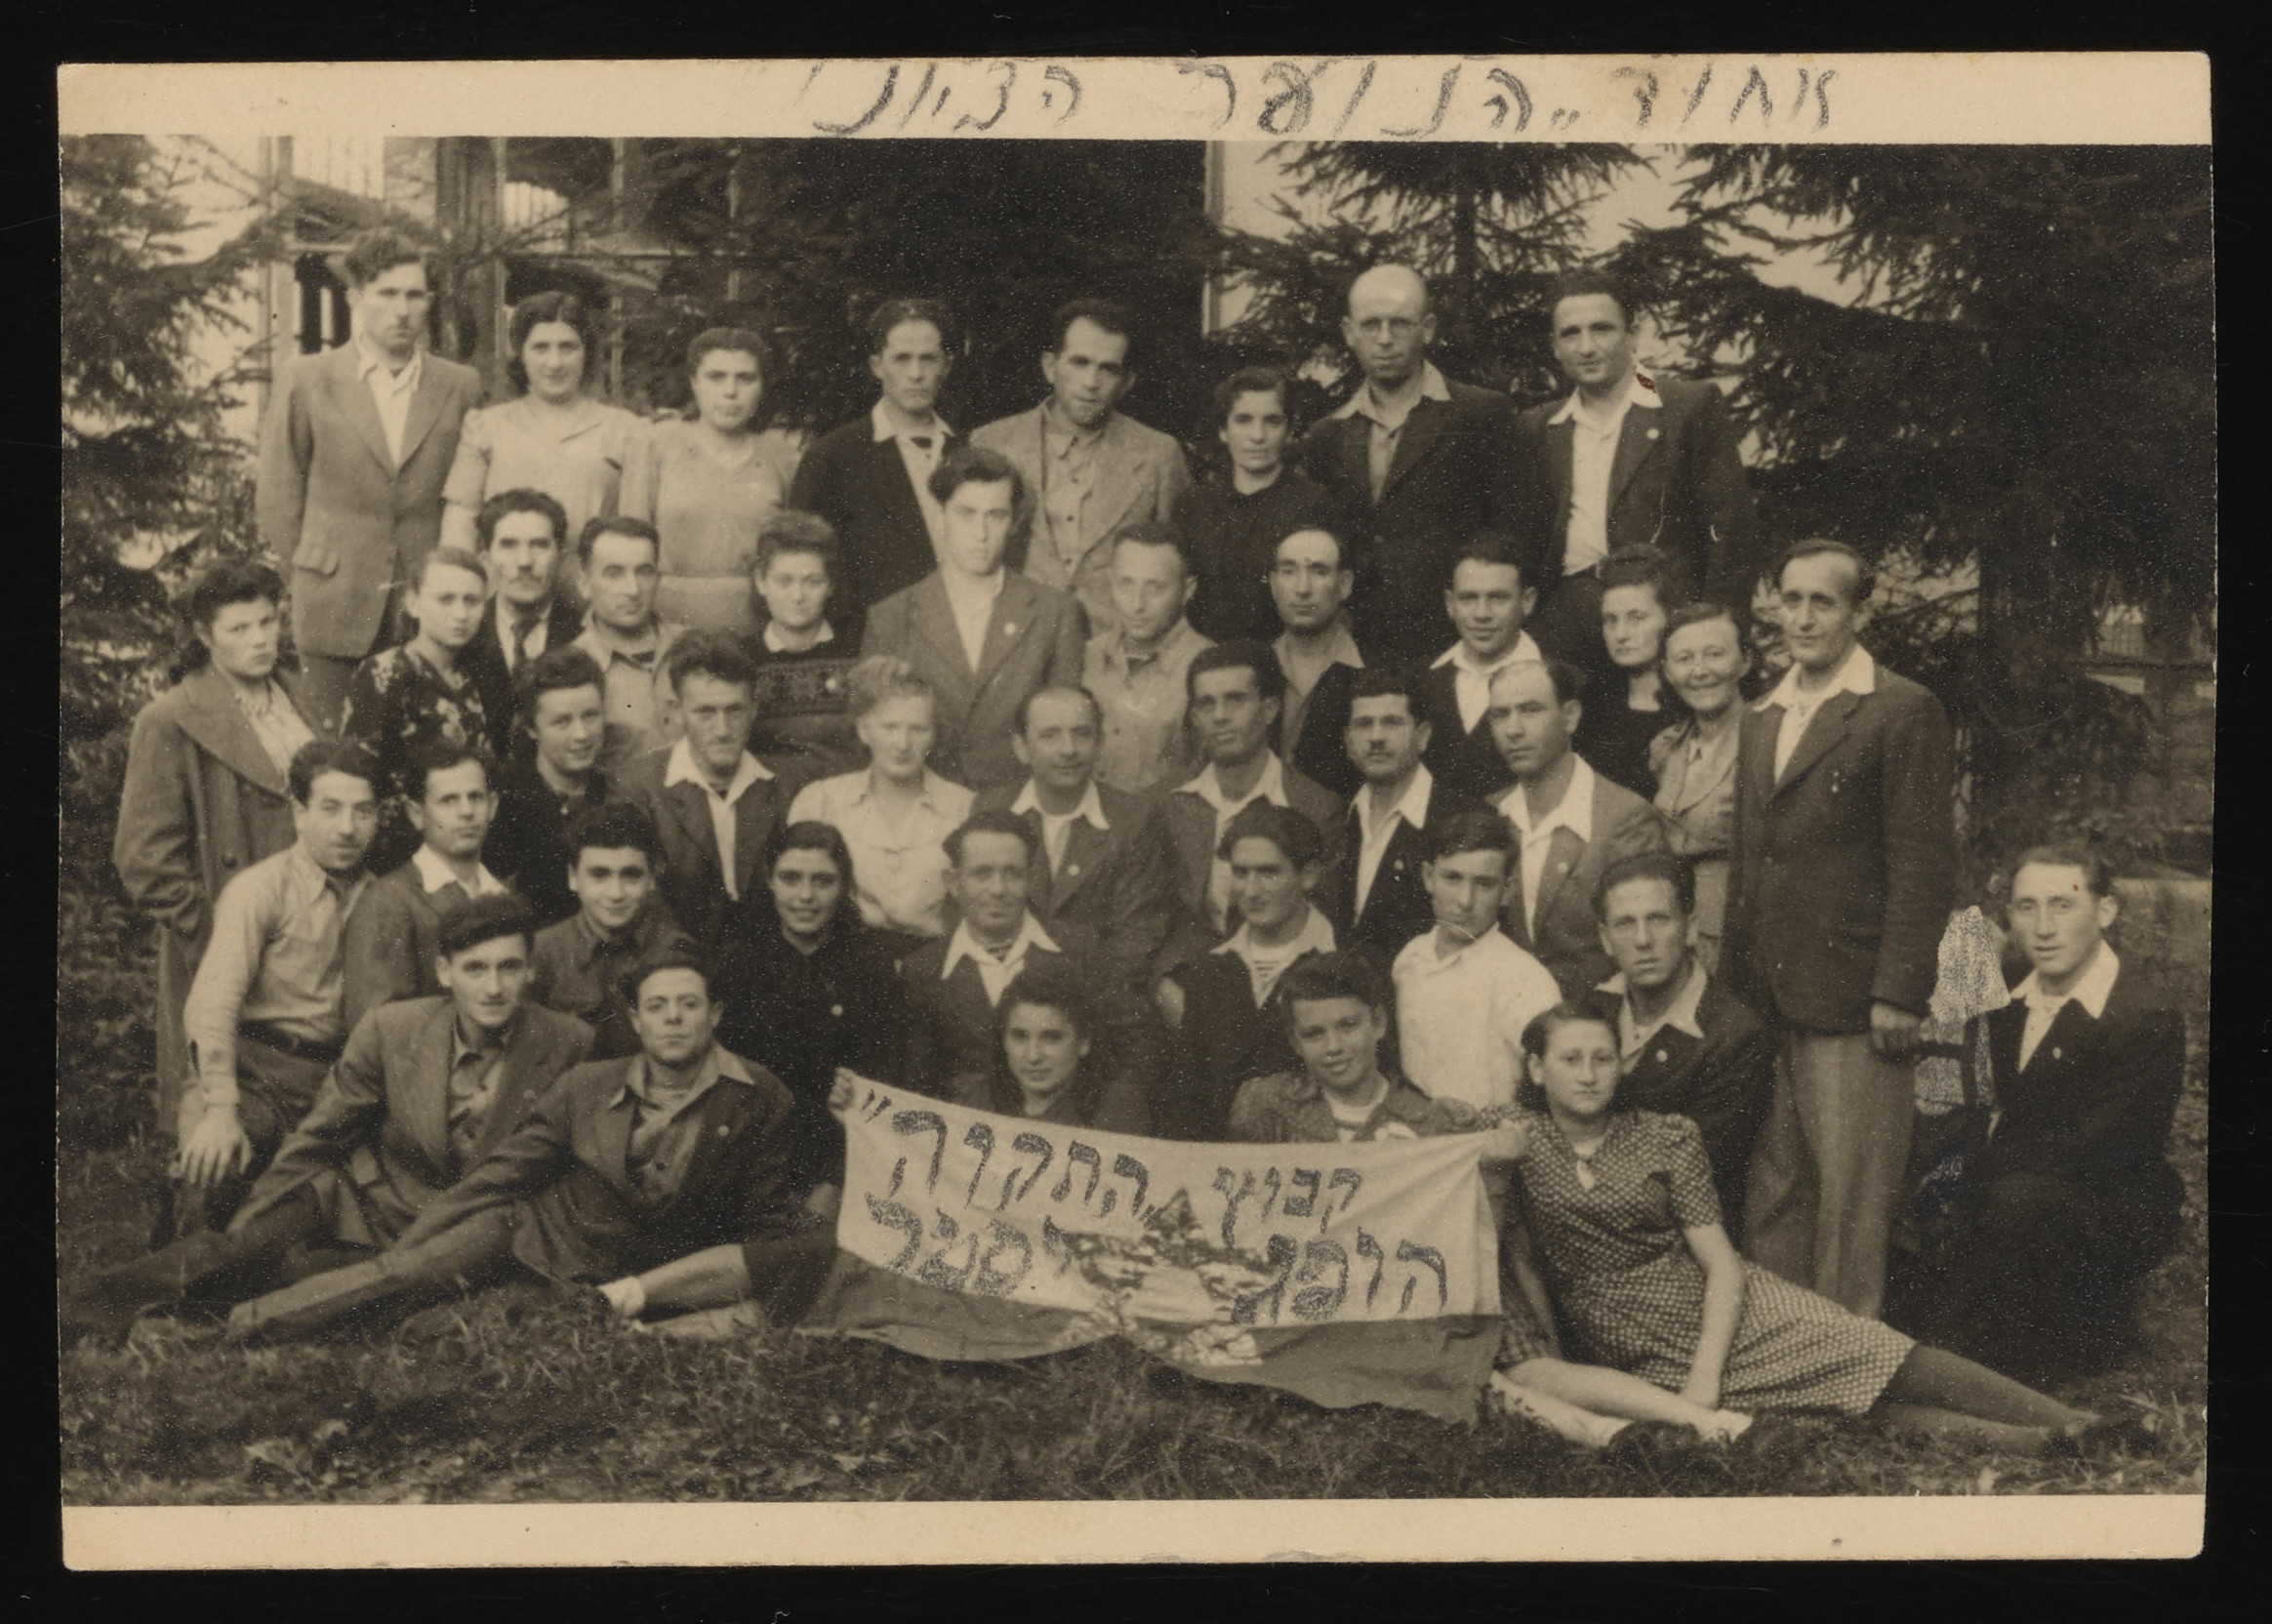 Members of Kibbutz Hatikvah in the Hofgeismar displaced persons' camp.  Among those pictured is Paula Hammer Gurtman, third last on the left and Berish Gurtman, third row, fifth from the right.